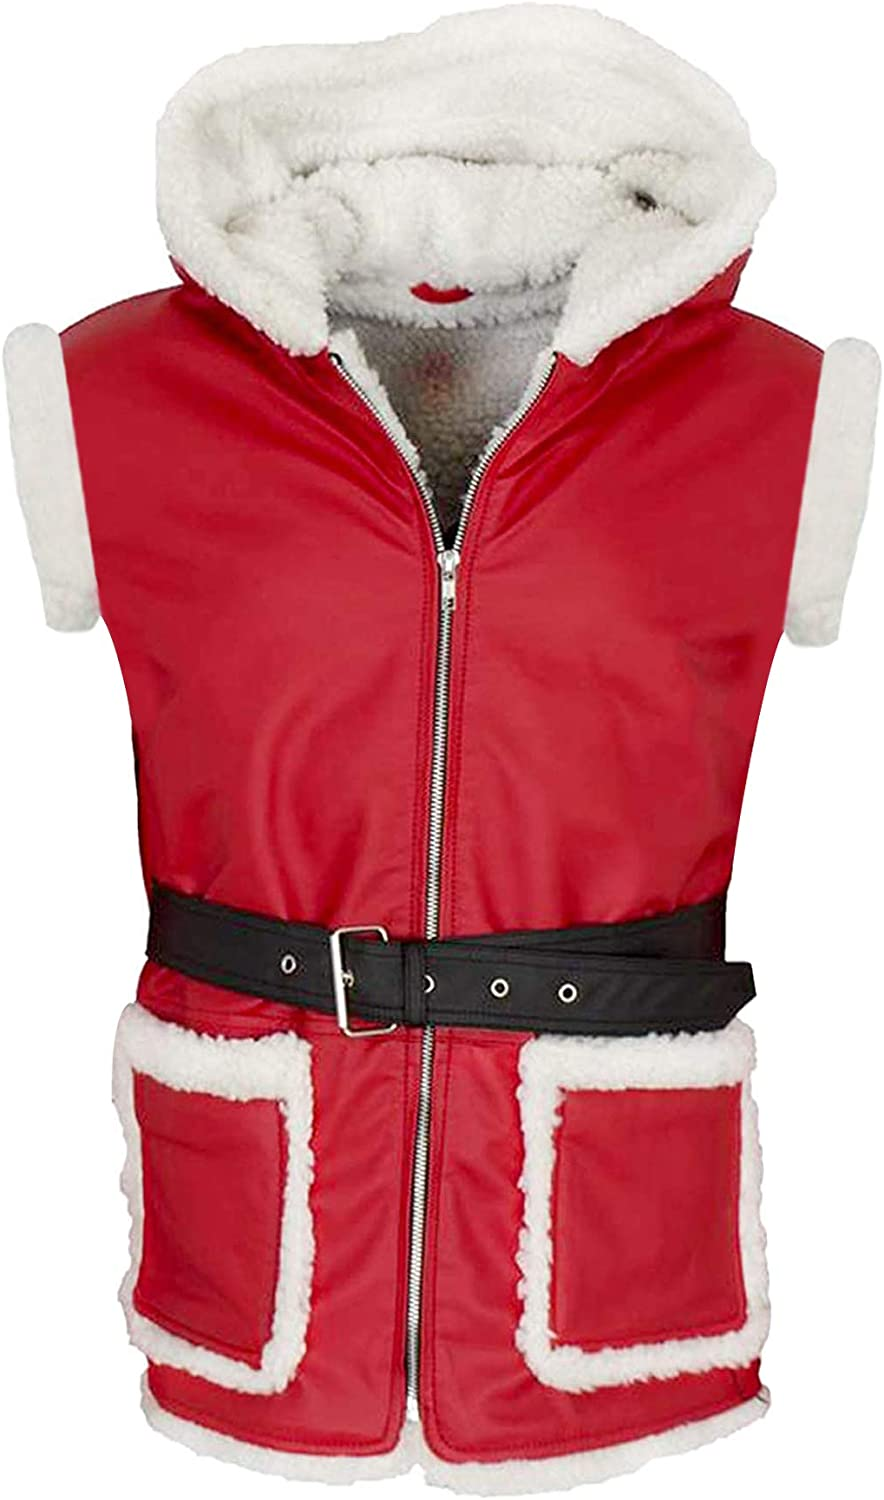 Mens Christmas Red Leather Coat - Cosplay Costume Outfit - Shearling Adult Winter Christmas Leather Jacket for Men 2XS to 4XL